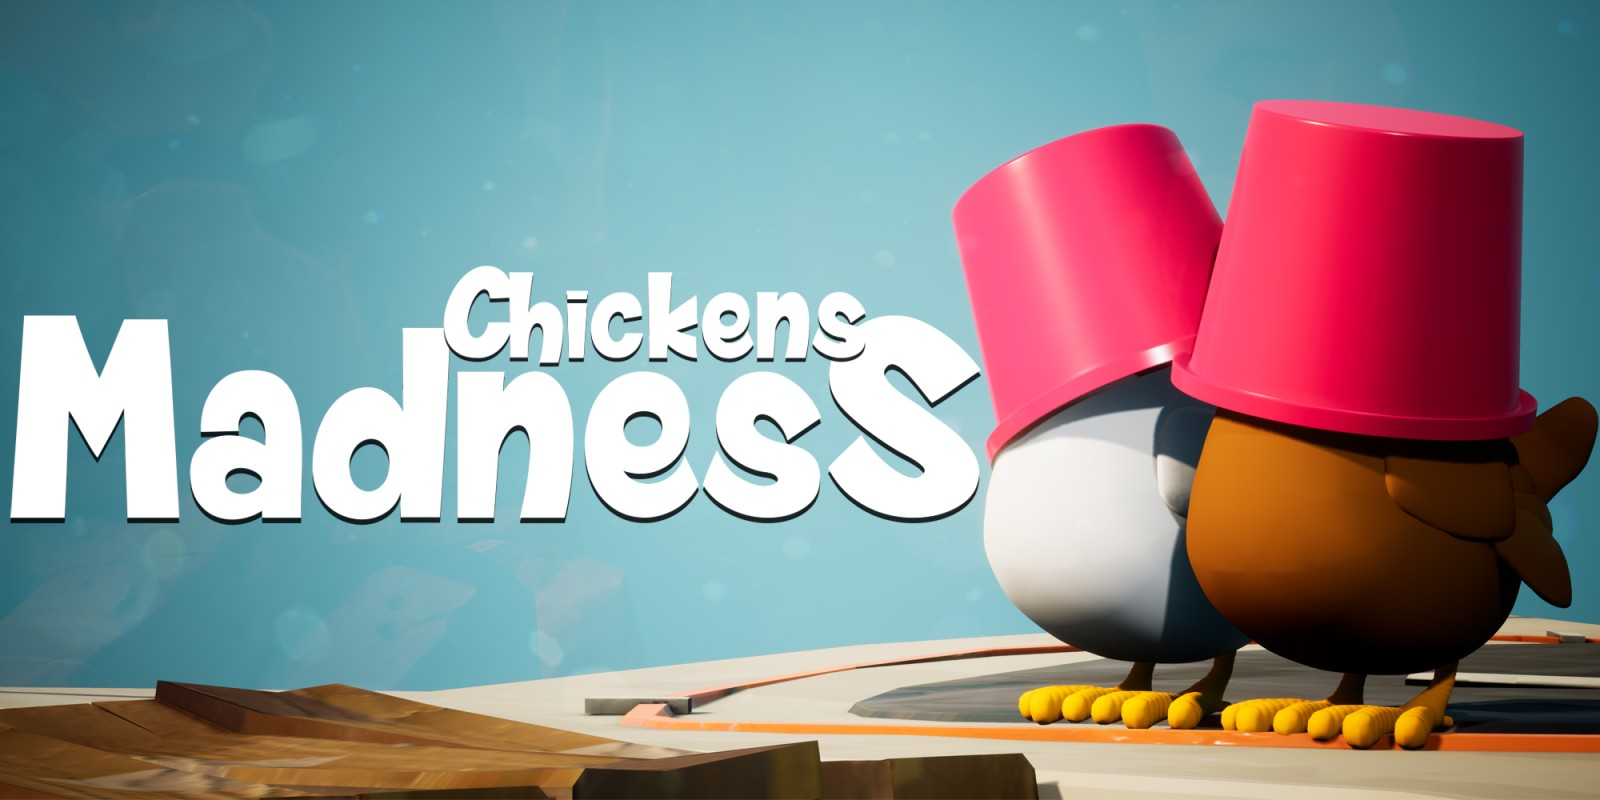 Chickens Madness